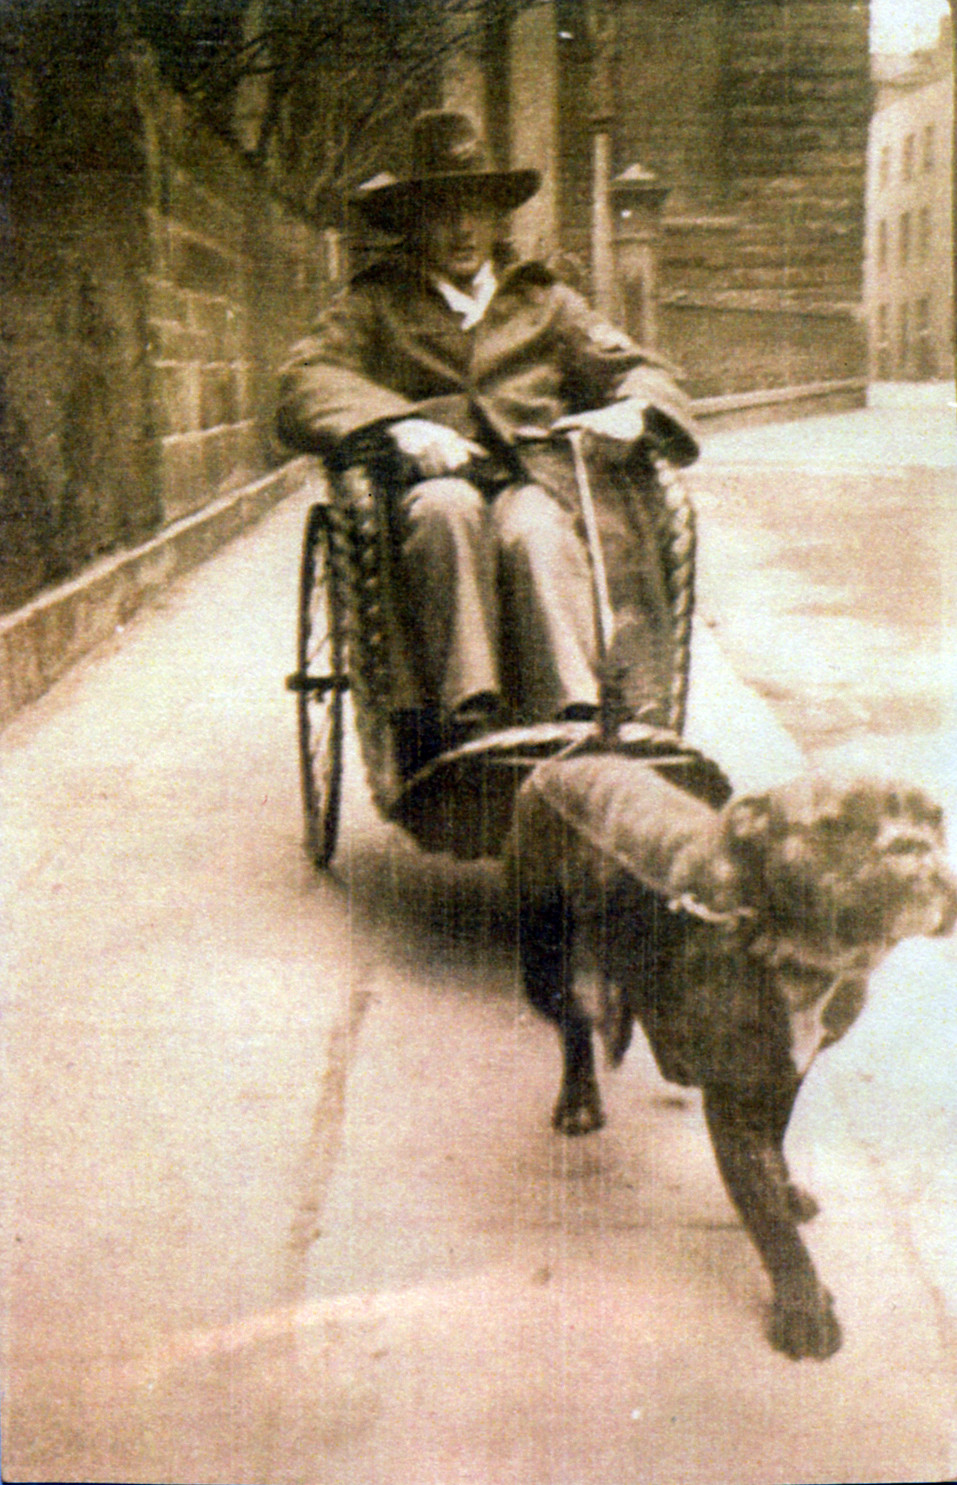 A man sitting in an old fashioned wheelchair with bulldog on lead in front